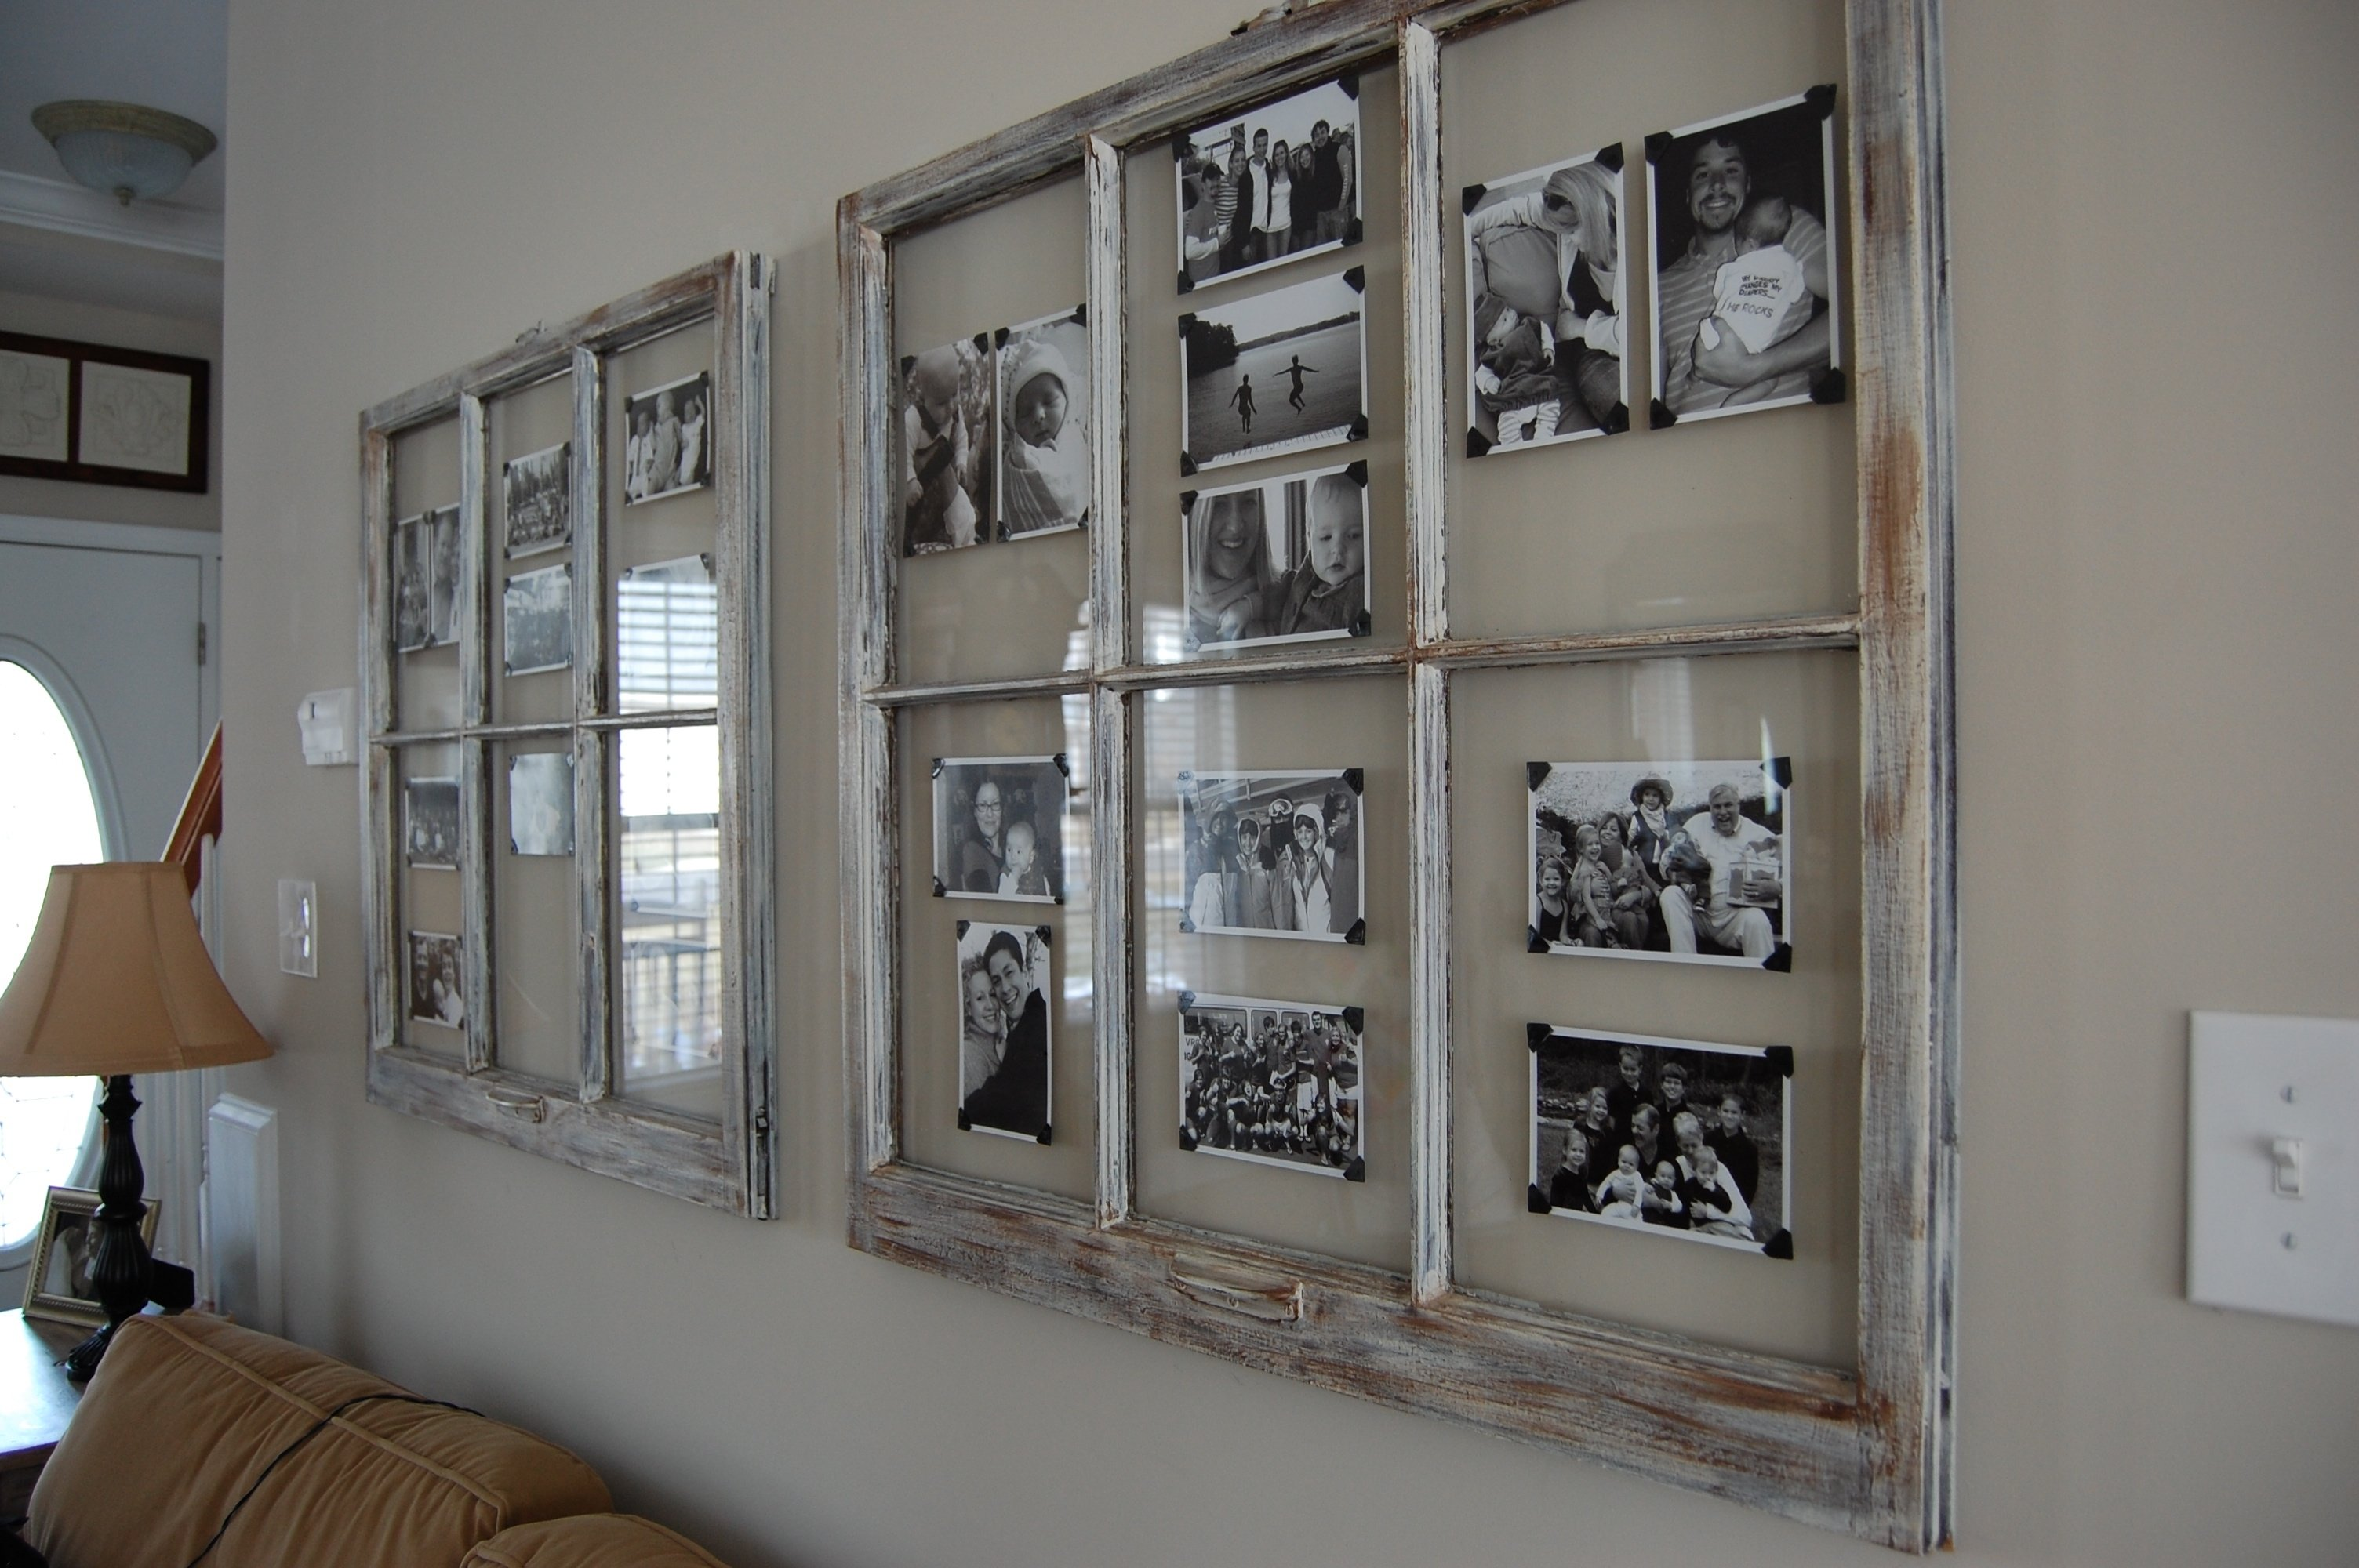 10 Famous Old Window Frame Decorating Ideas window picture frame ideas window pane picture frame ideas diy 2021